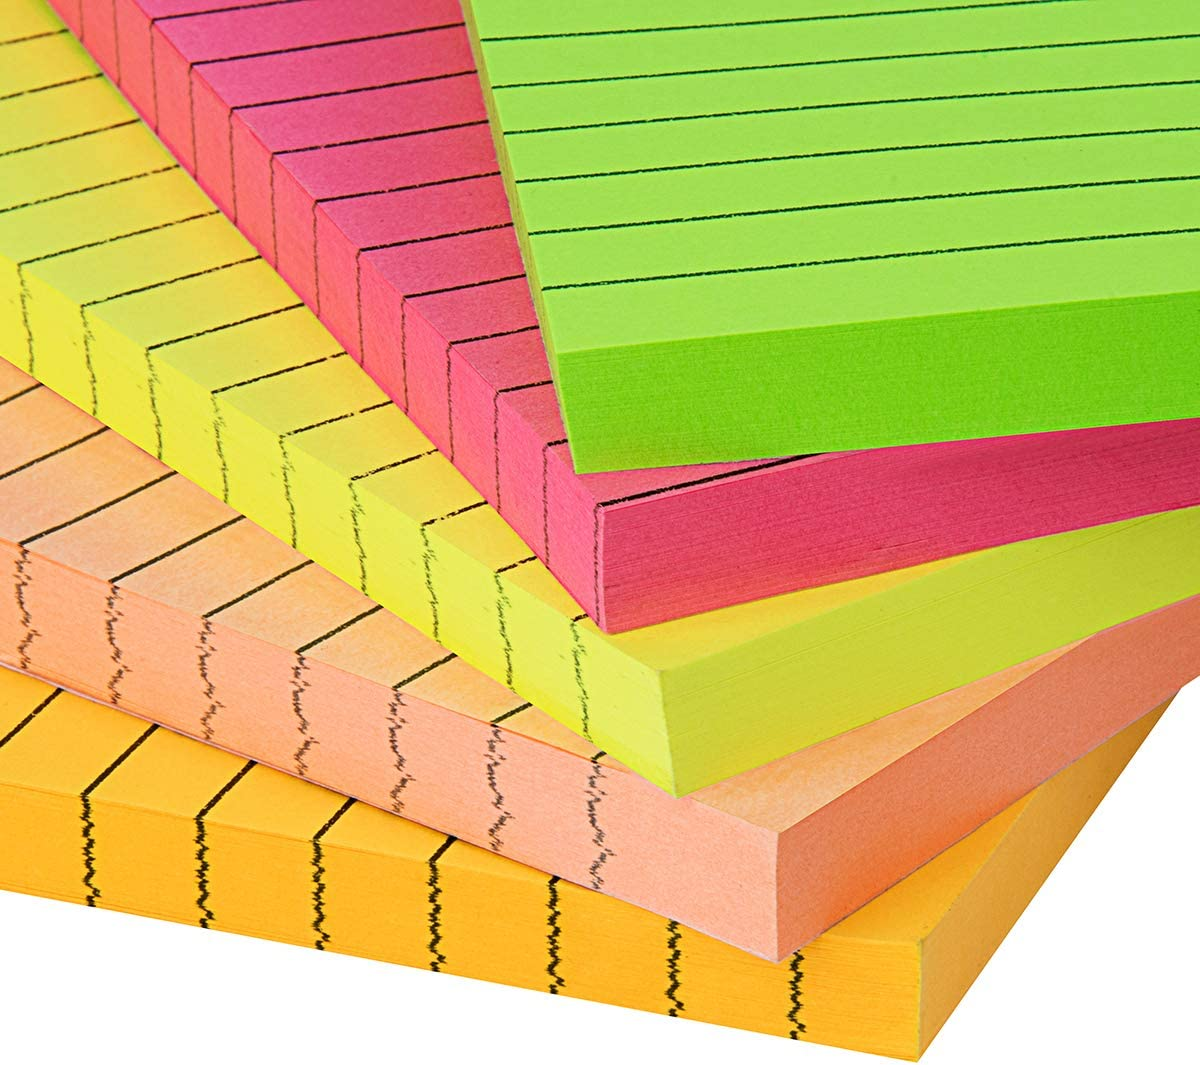 4 x 6 50 Sheets//Pad ZCZN 5 Bright Color Lined Sticky Notes 5 Pads//Pack